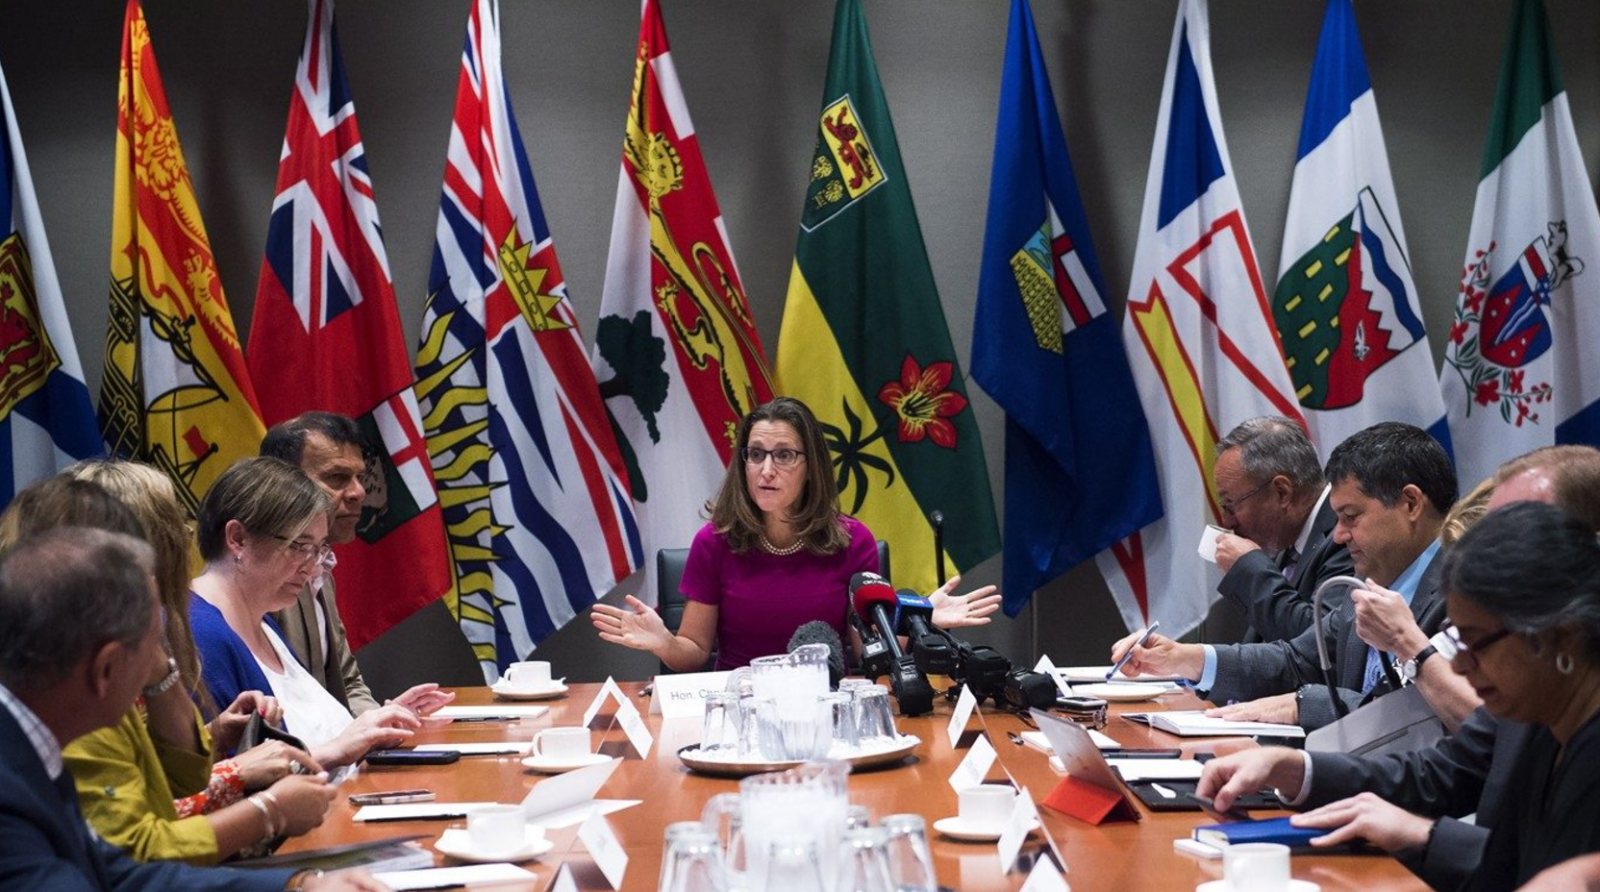 Chrystia Freeland, Foreign Affairs Minister, NAFTA, labour, NAFTA renegotiations